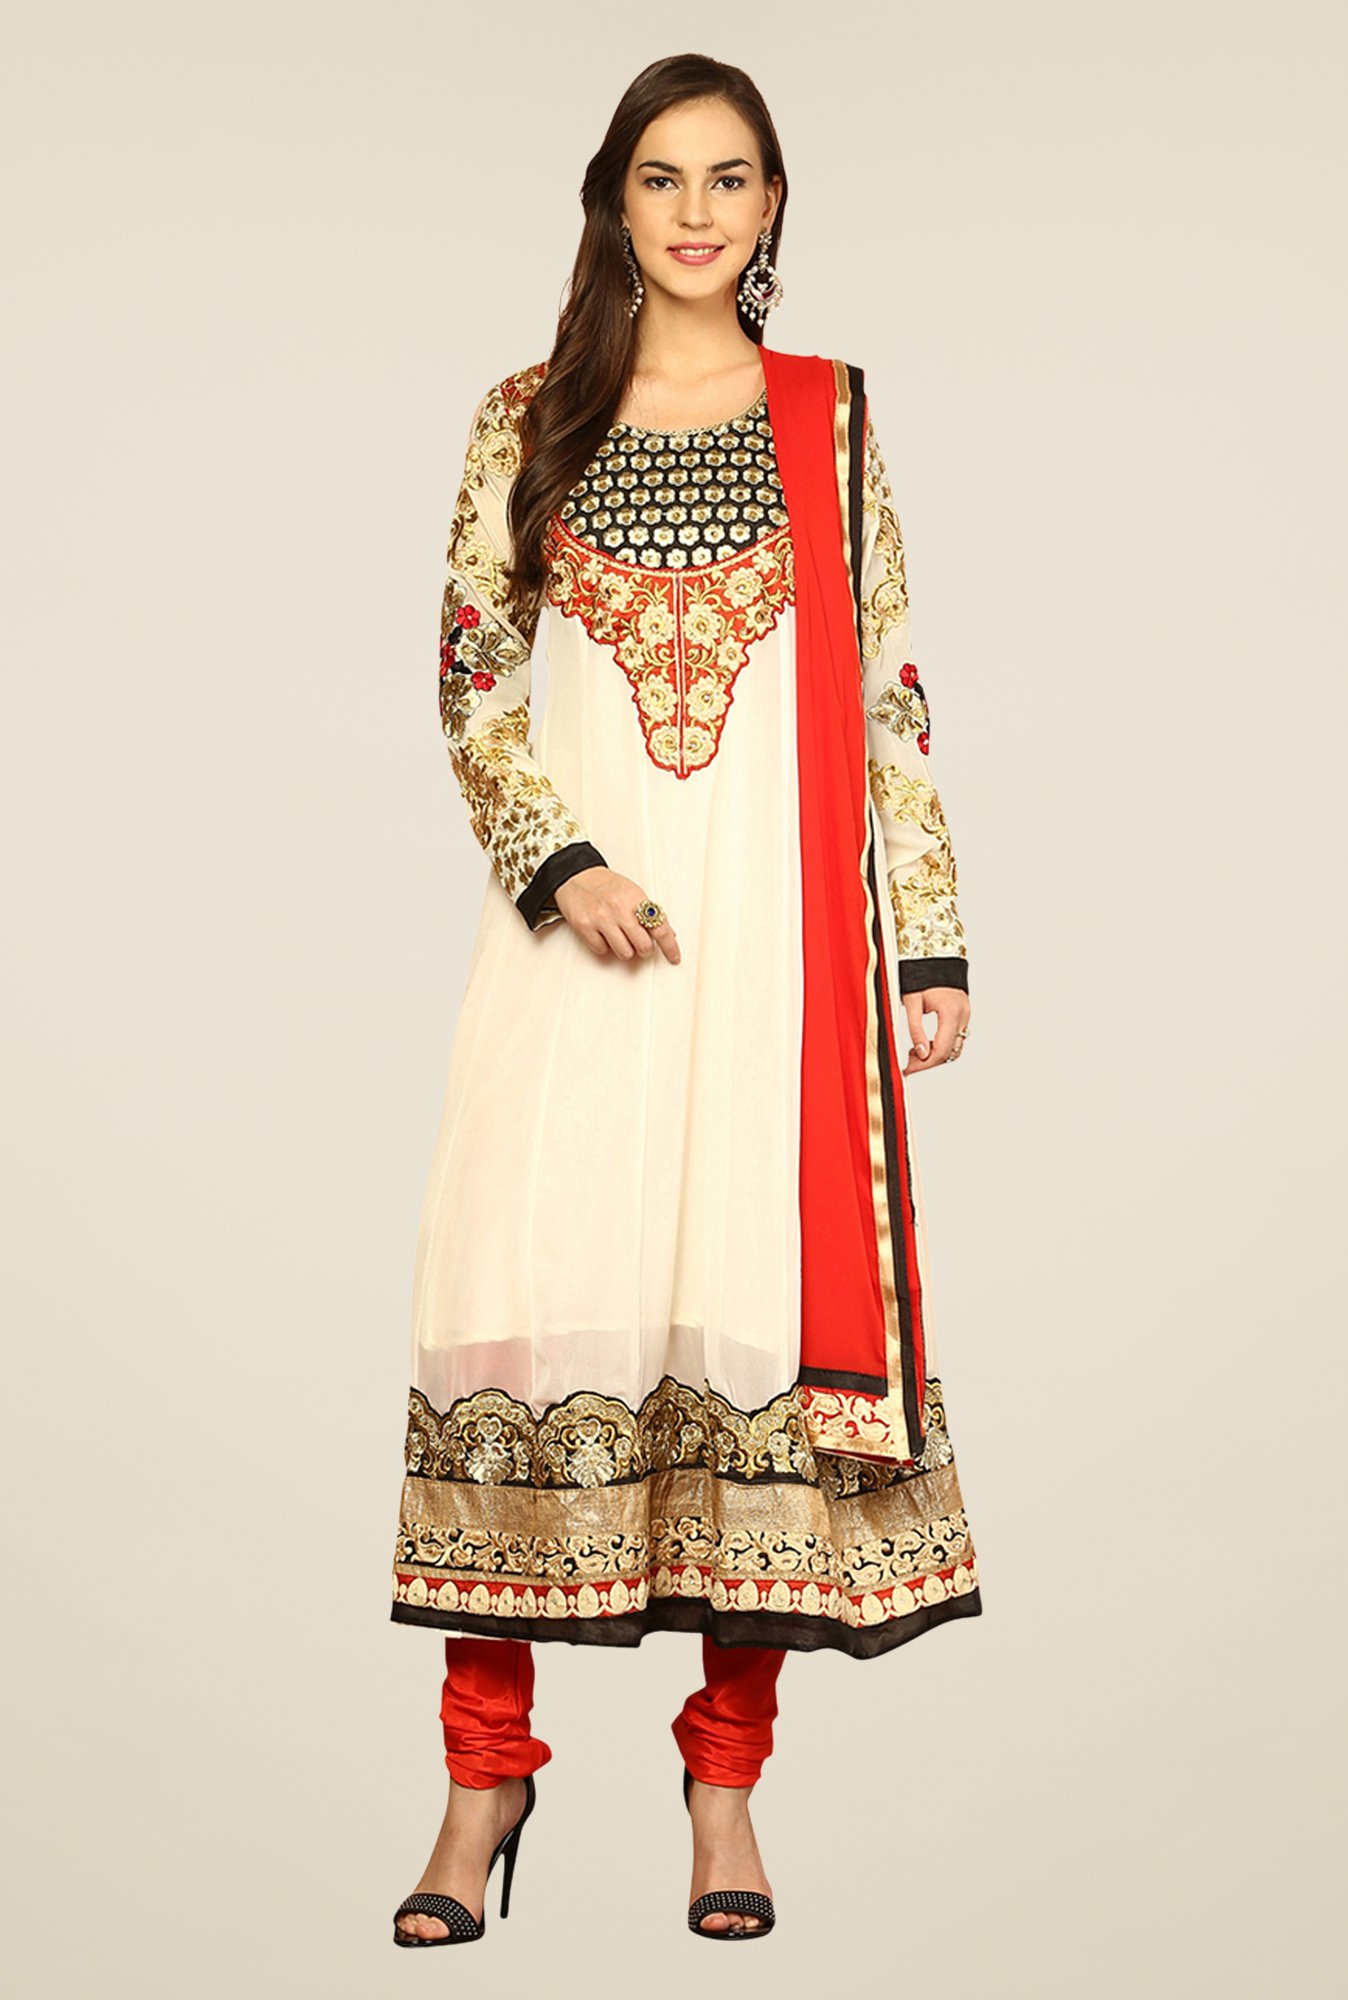 Yepme Ecru & Red Elegance Unstitched Suit Set